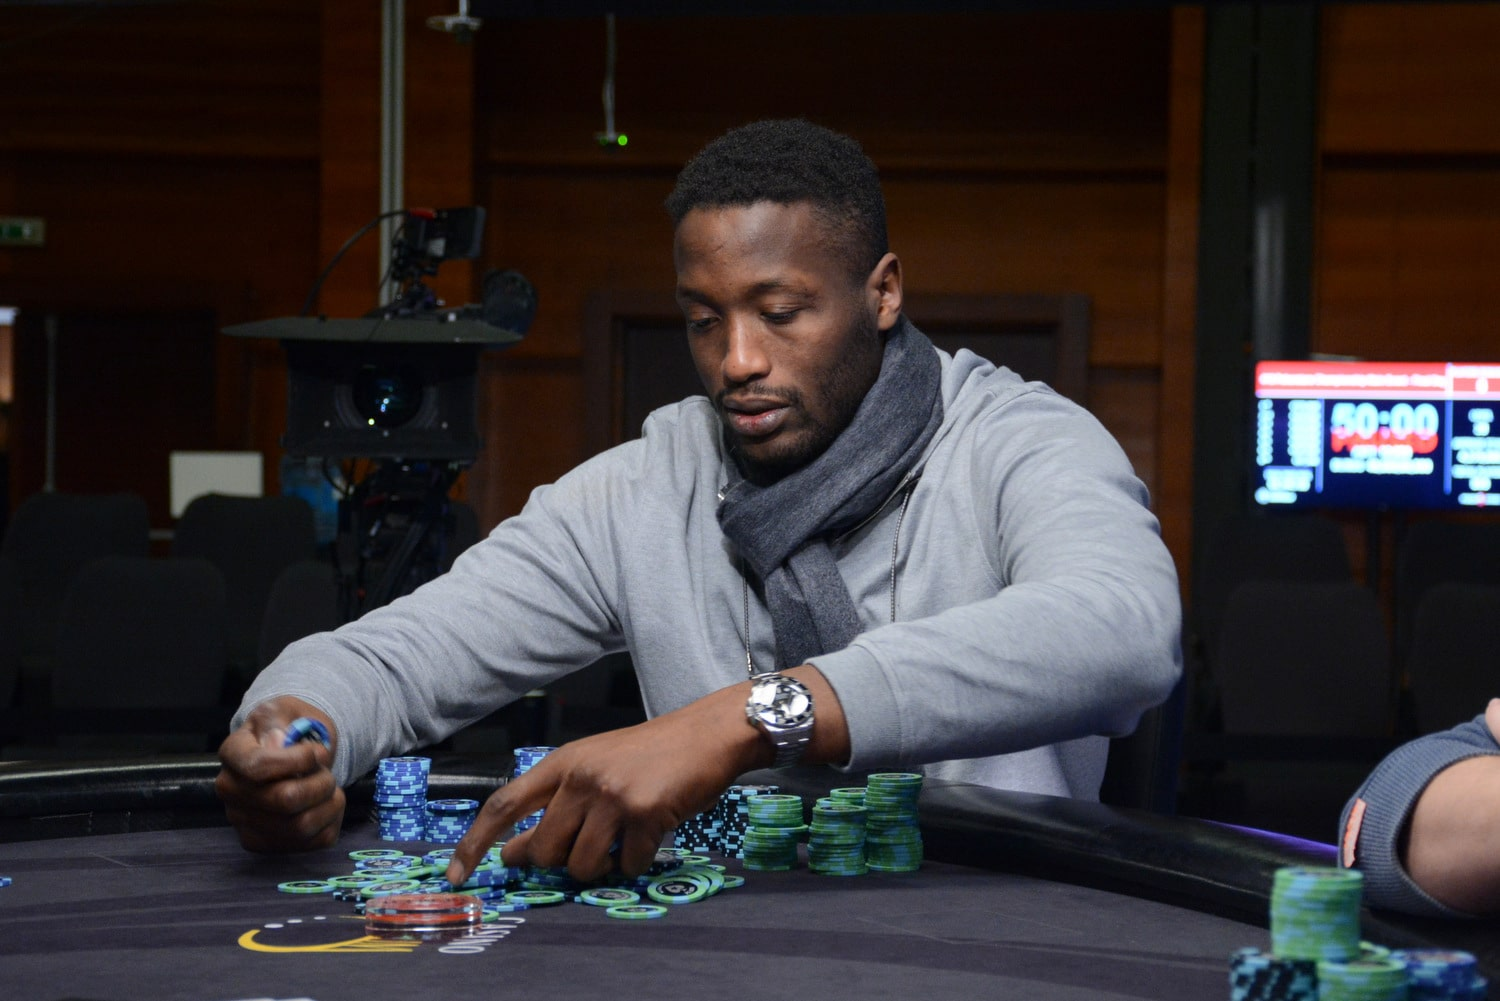 Kalidou Sow is the 2018 PokerStars London Festival Champion